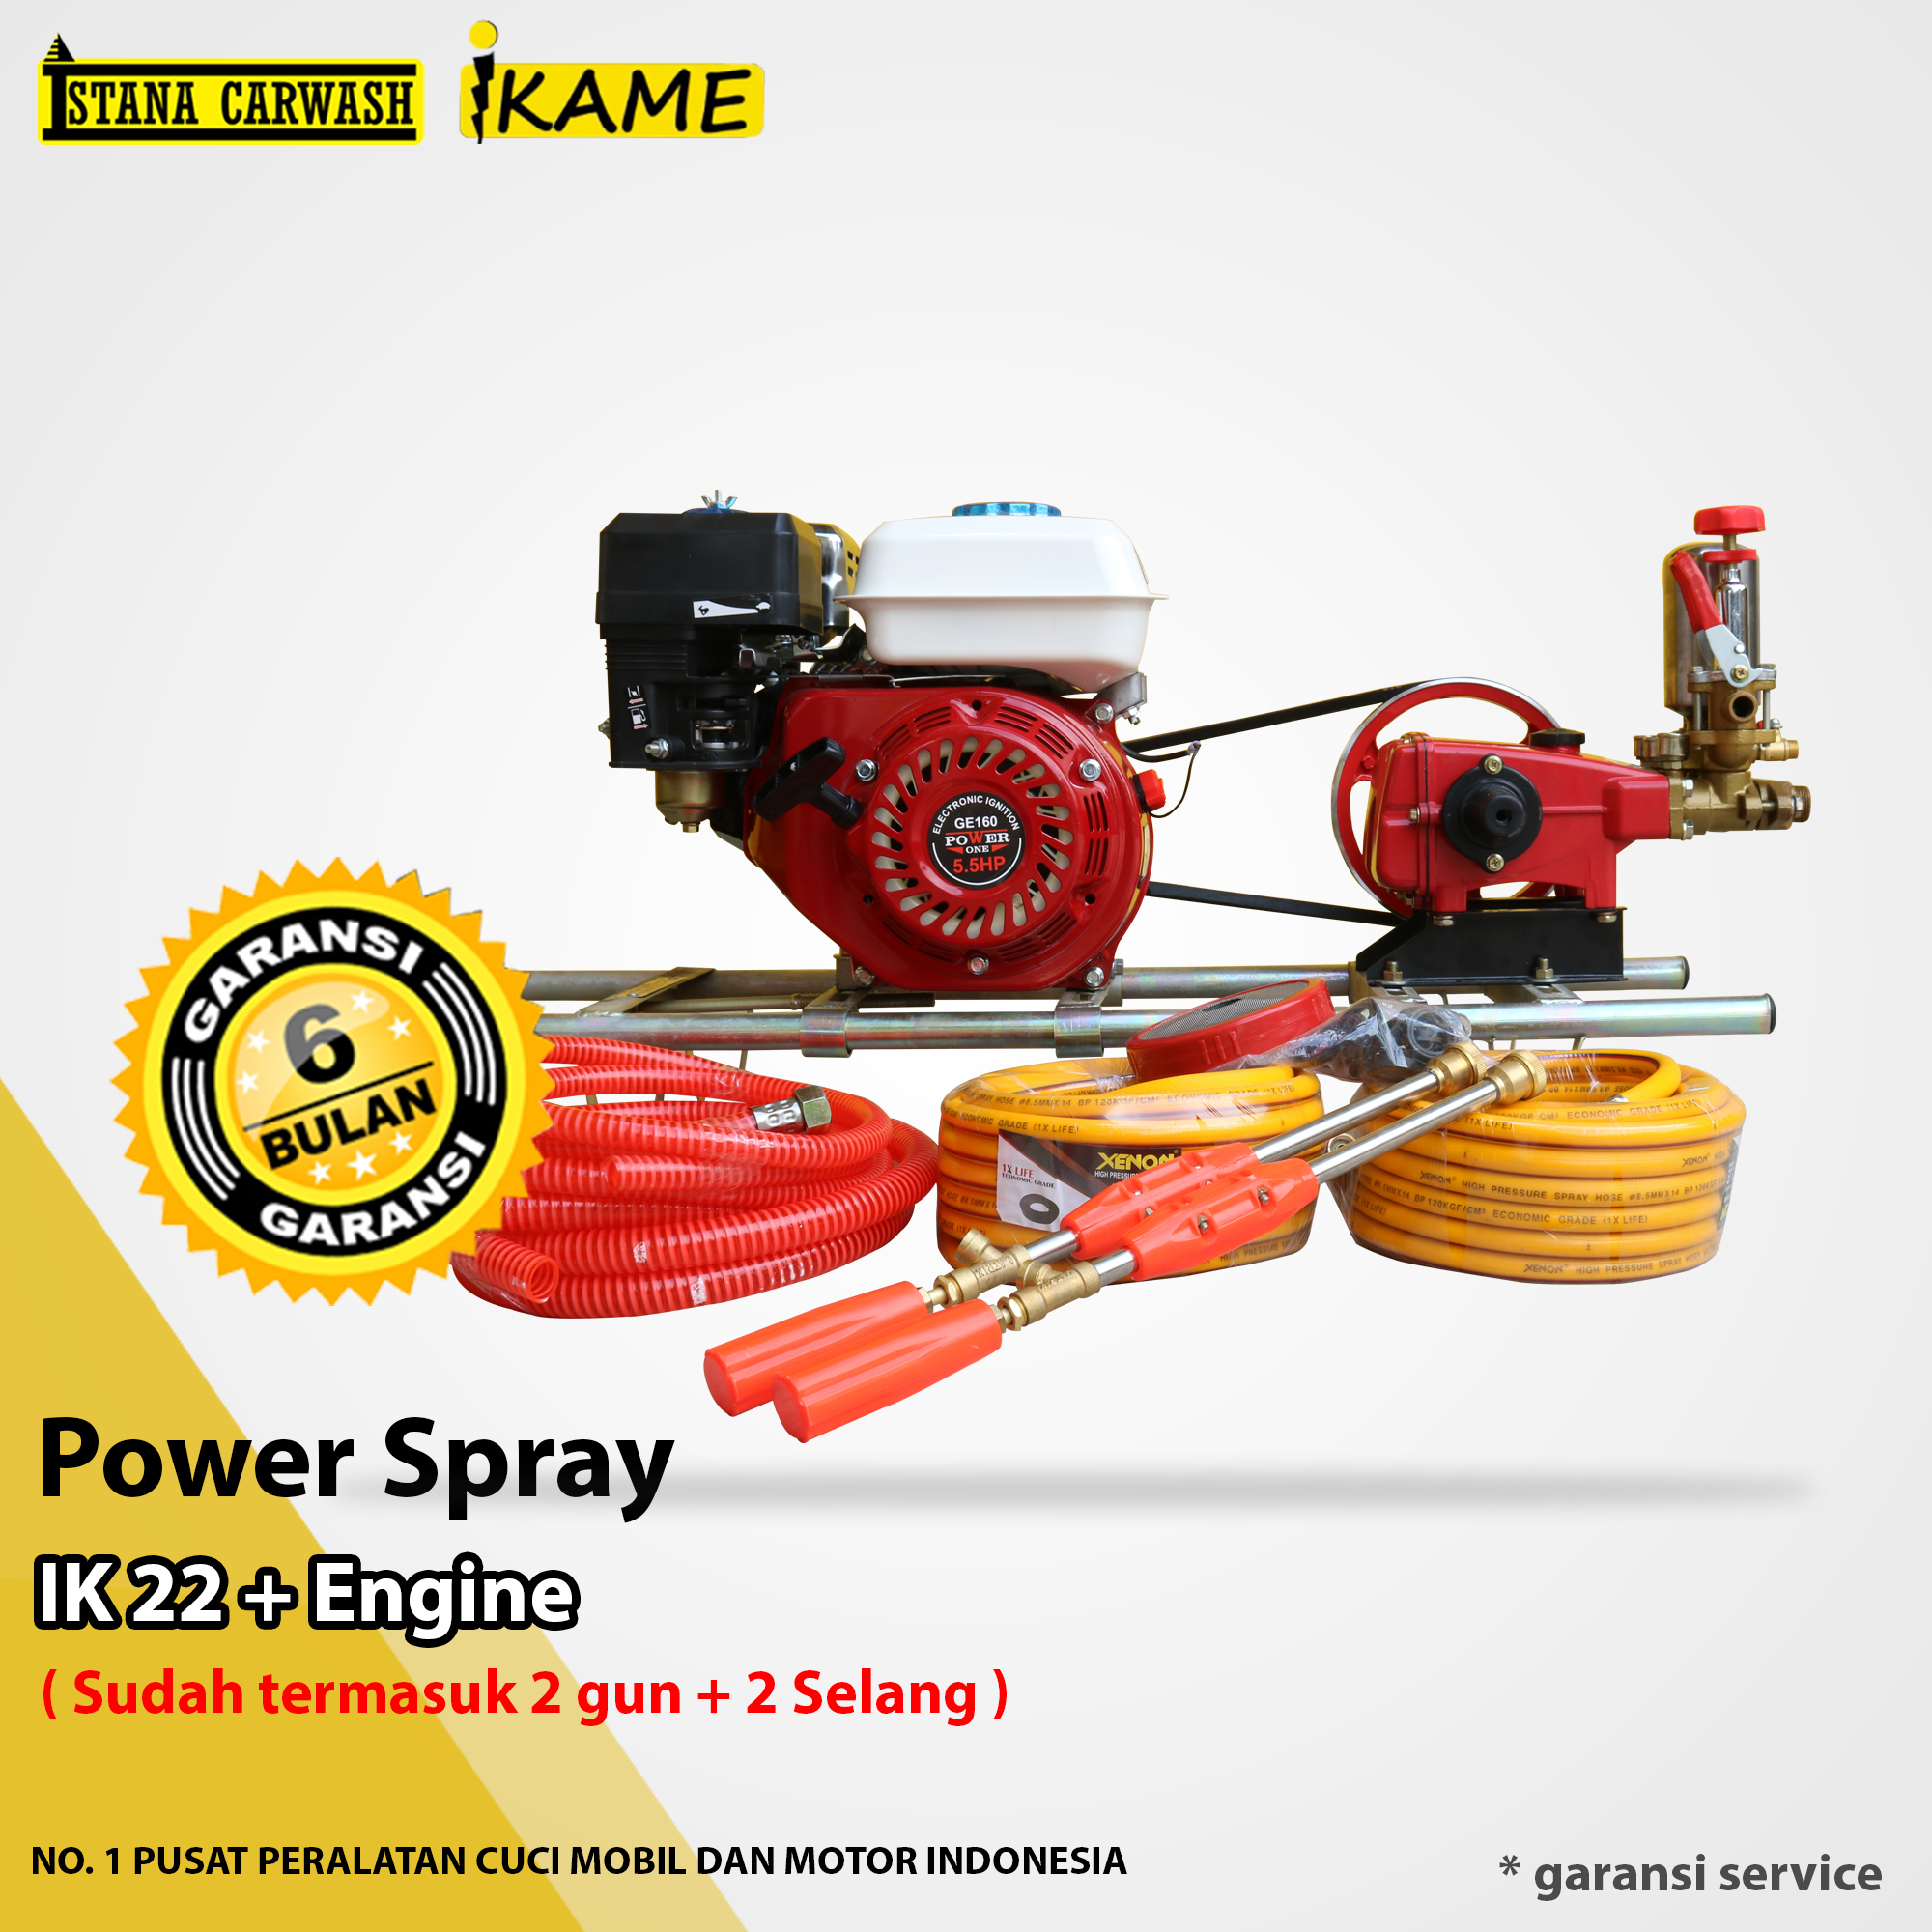 Power Spray Ikame IK 22 + Engine